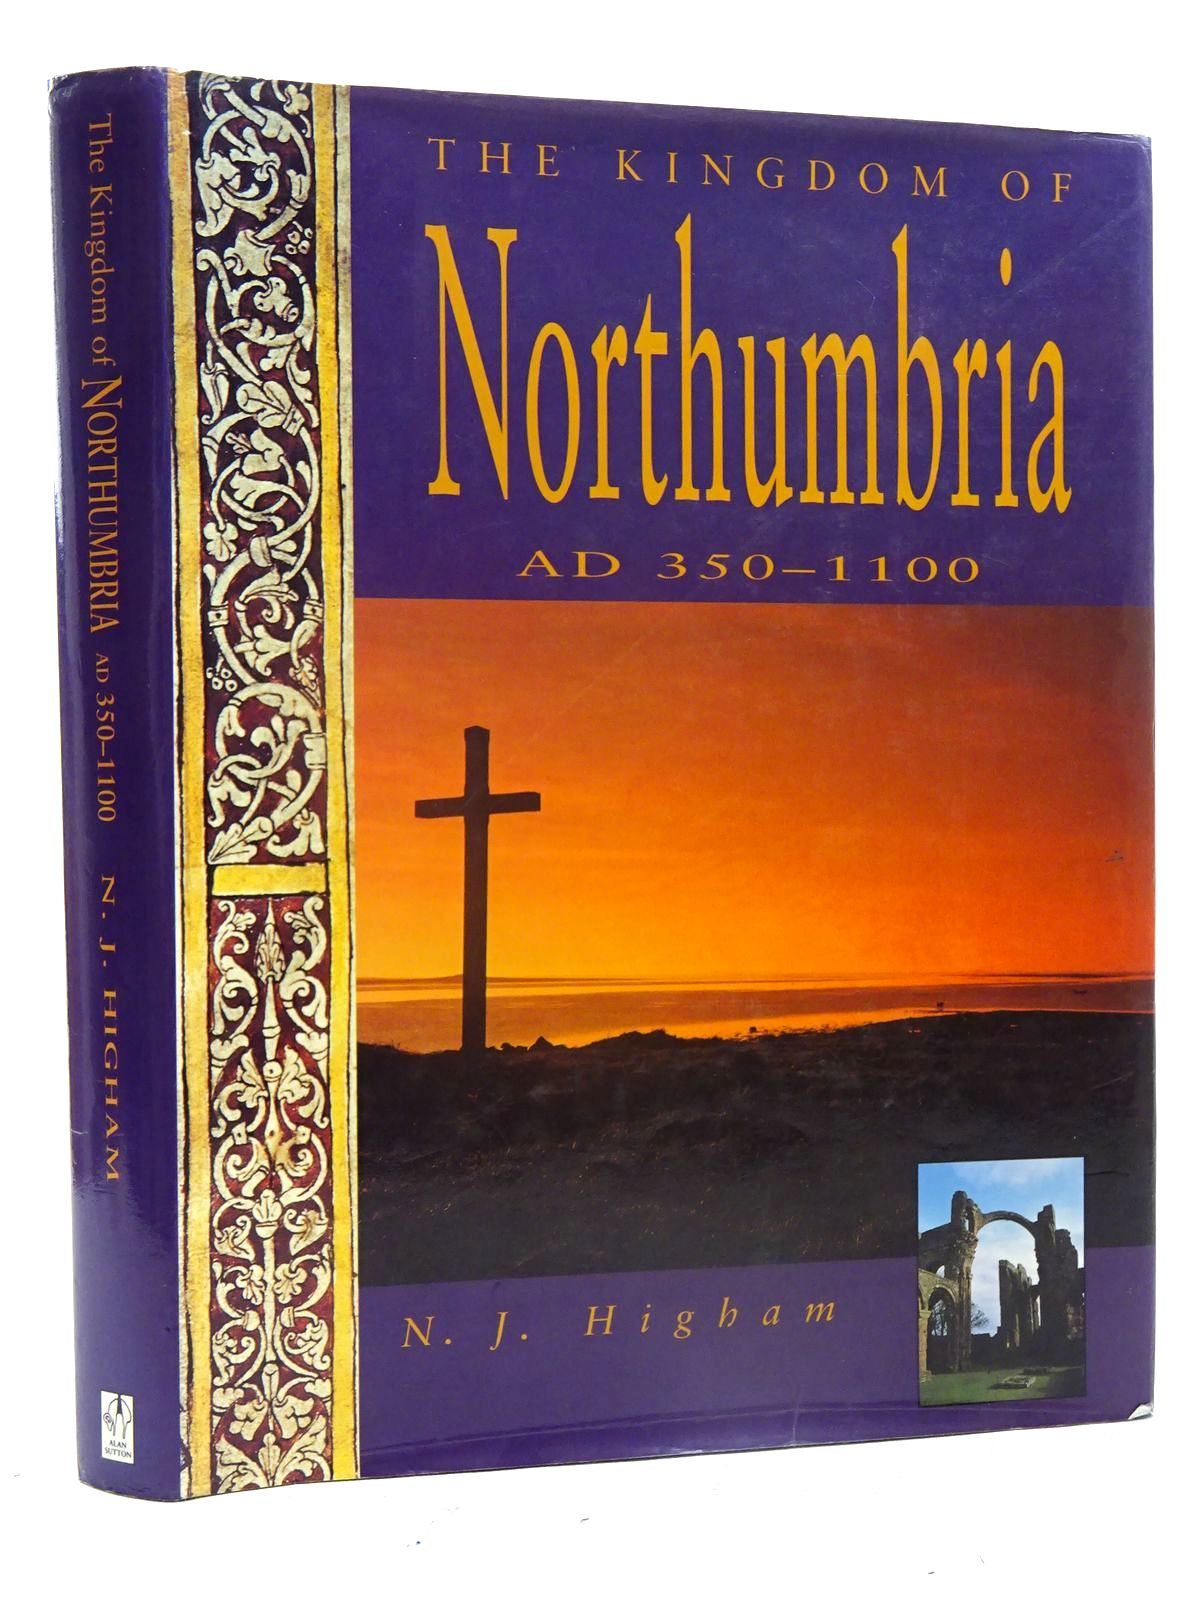 Photo of THE KINGDOM OF NORTHUMBRIA AD 350-110 written by Higham, N.J. published by Alan Sutton (STOCK CODE: 1816211)  for sale by Stella & Rose's Books